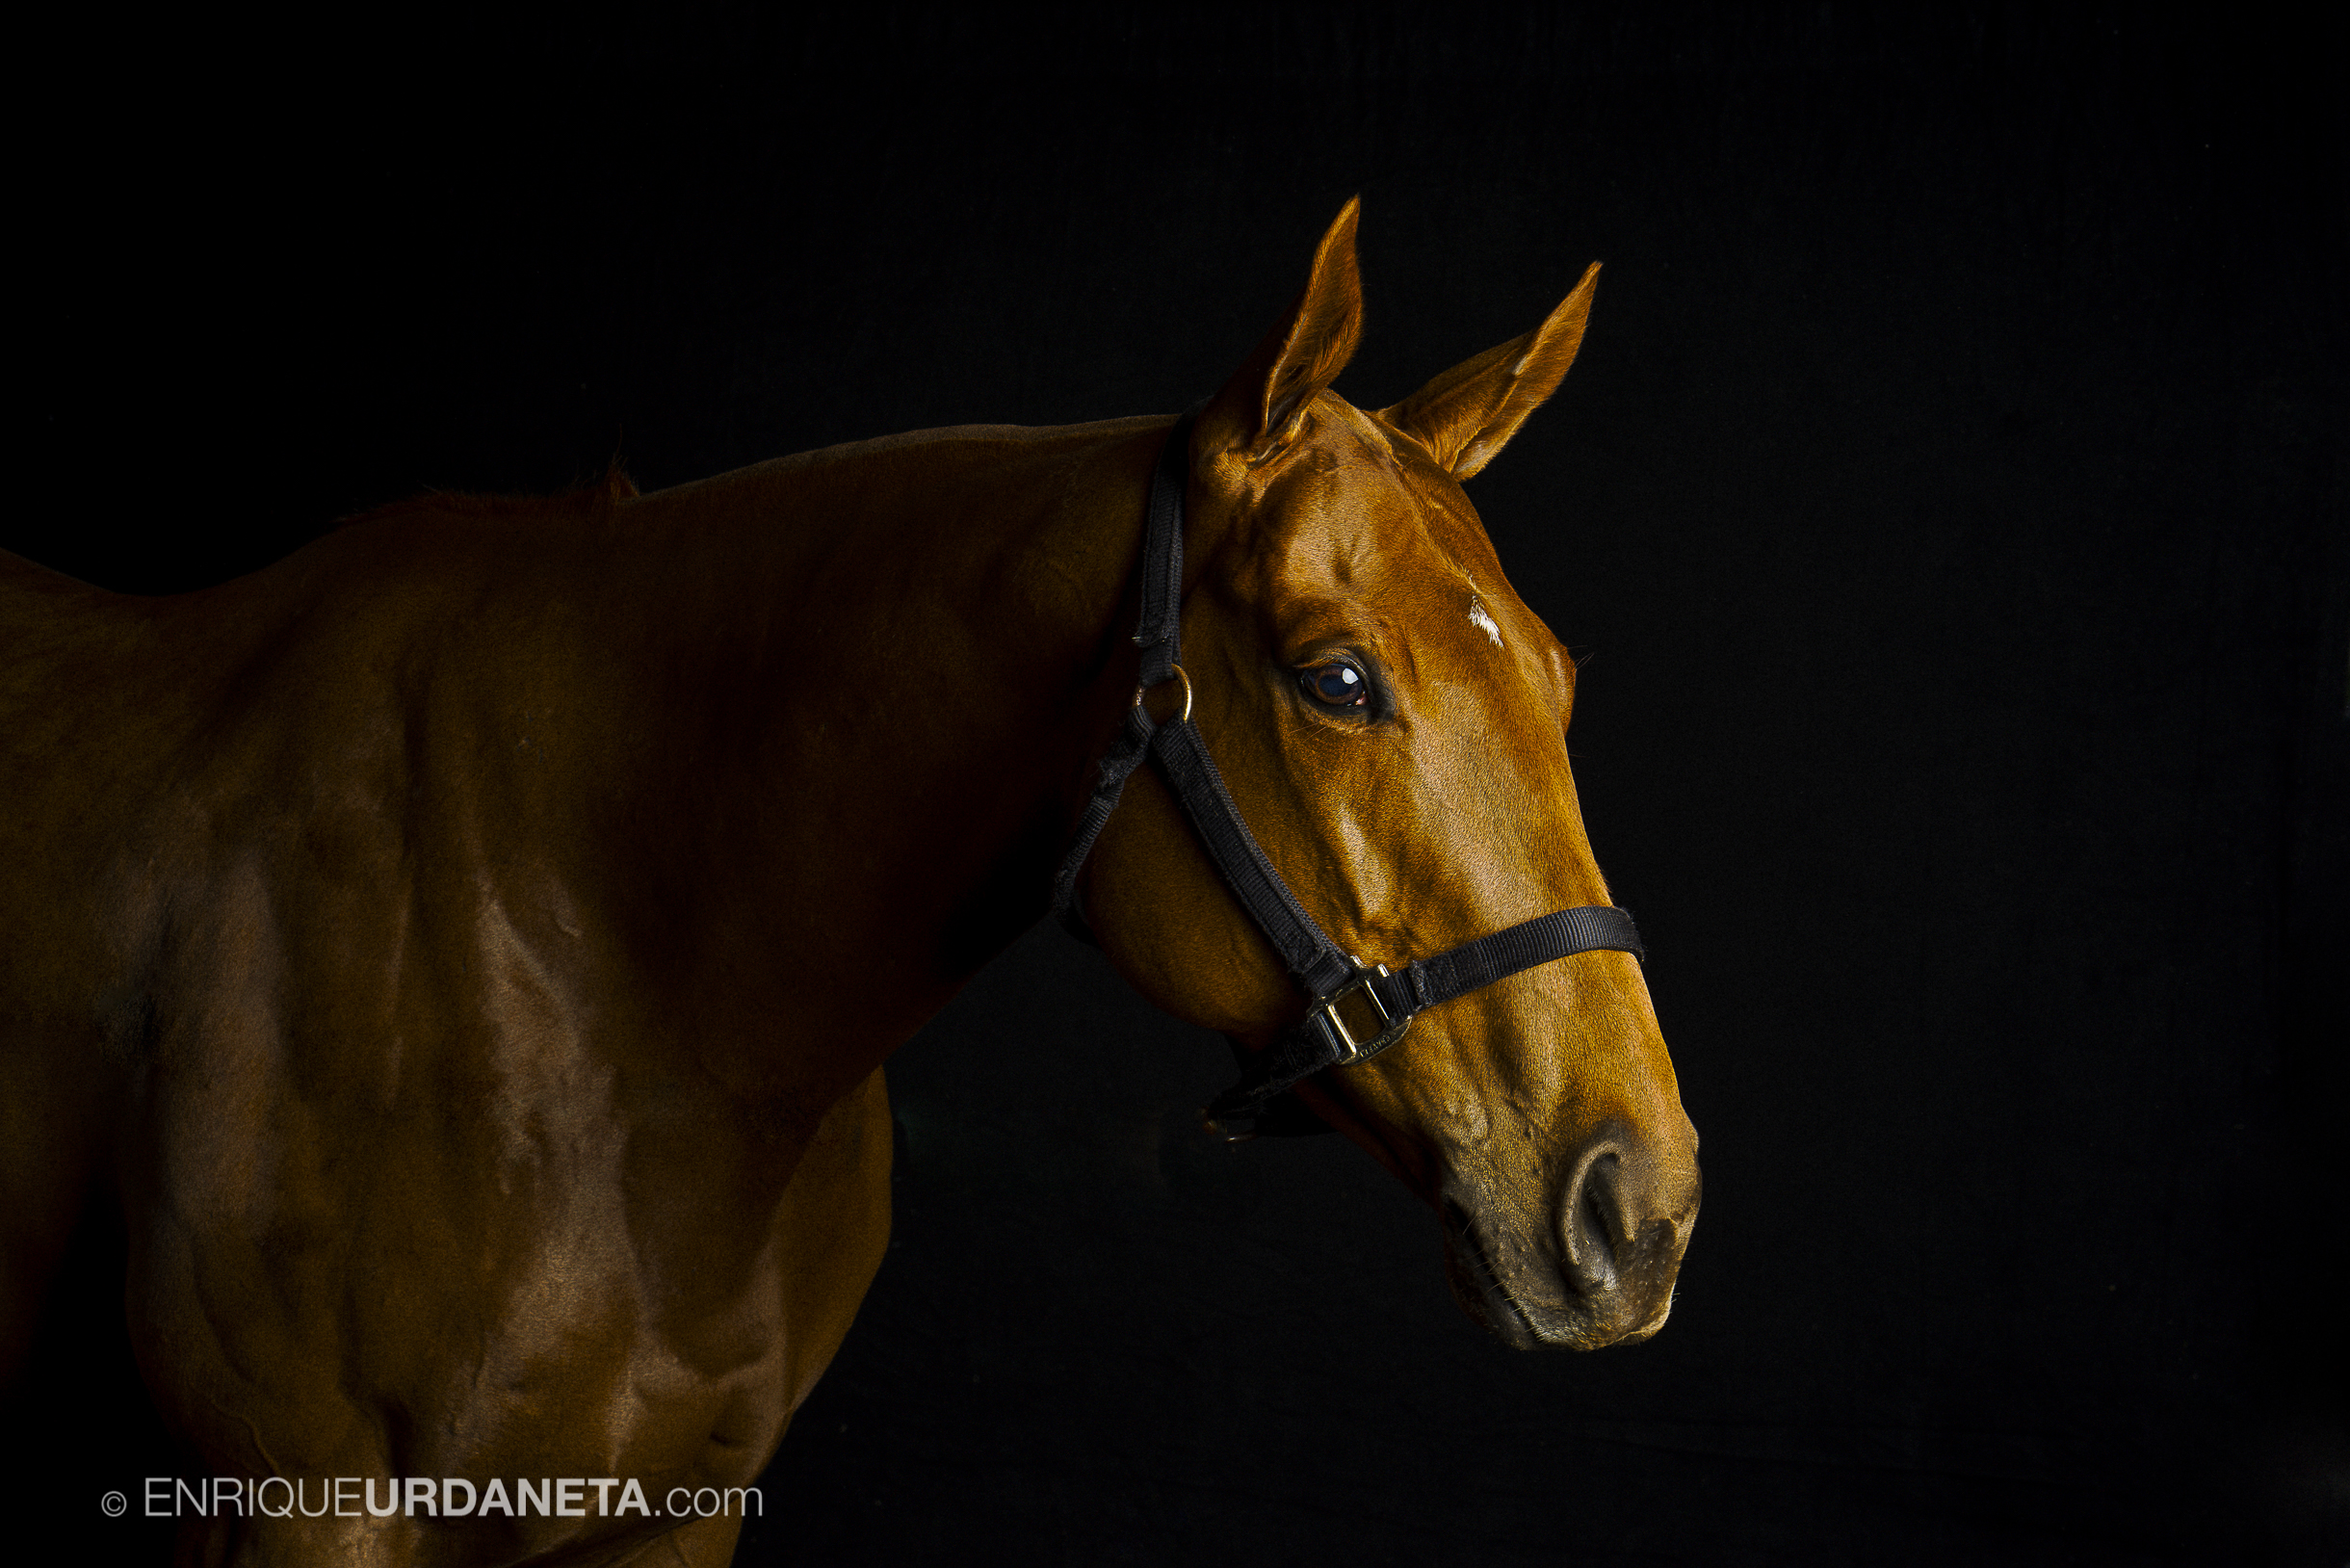 Equine Photographer Enrique Urdaneta